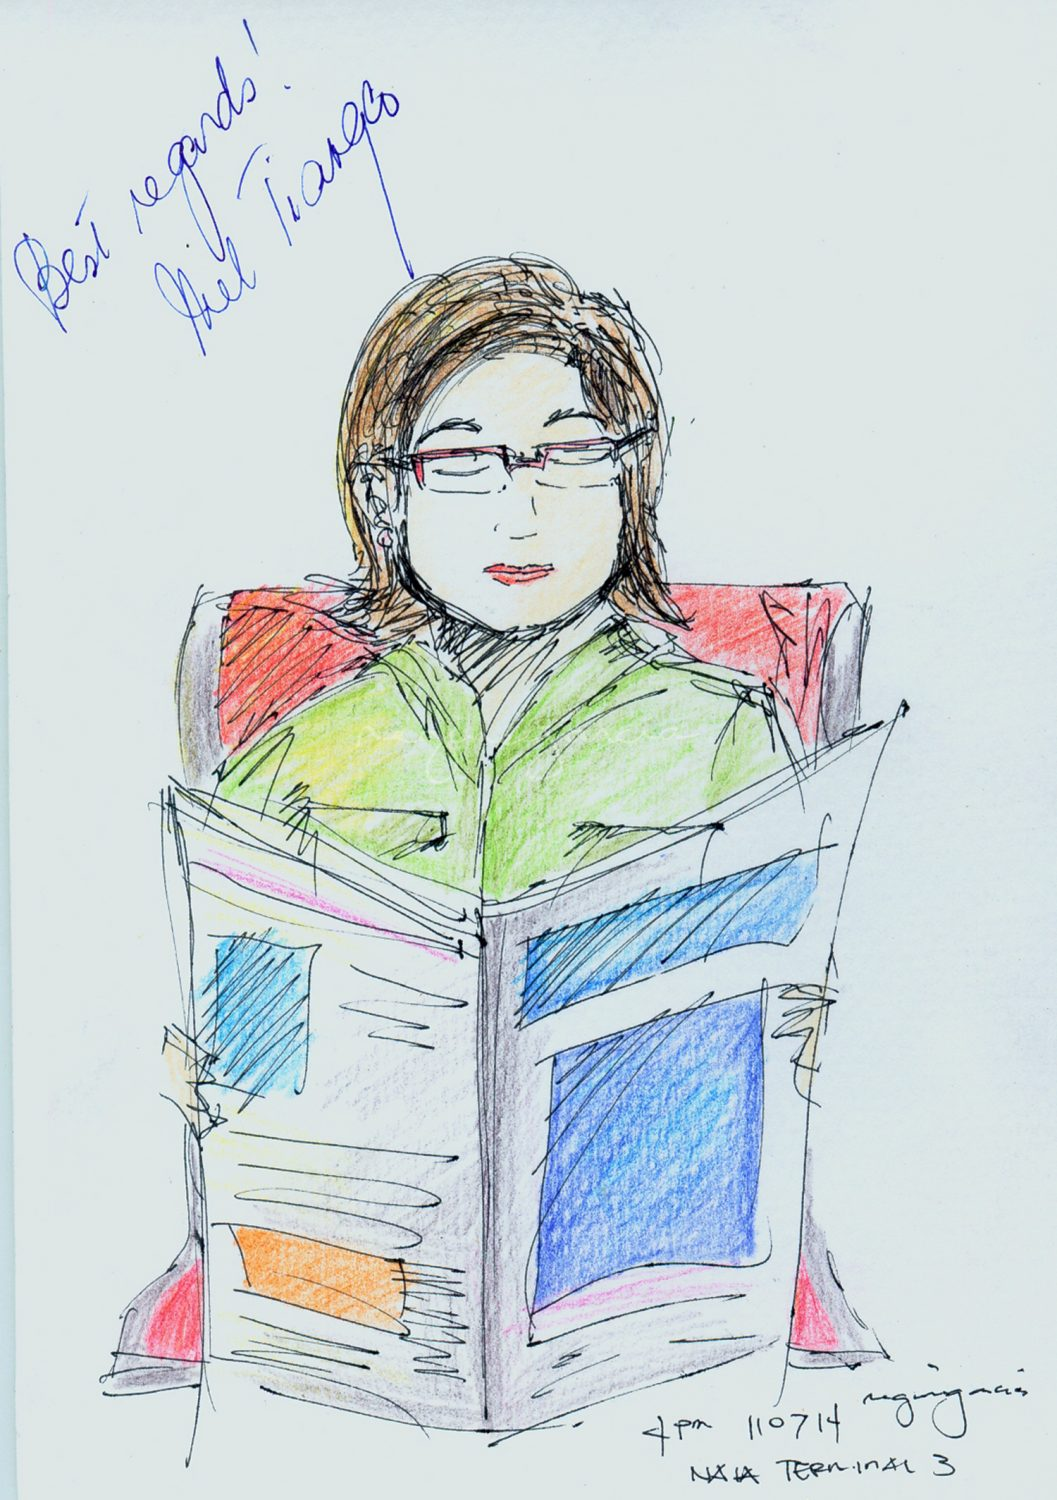 A quick in situ sketch of Mel Tianco while she was reading the newspaper across us. (Look! We had this signed by her!)